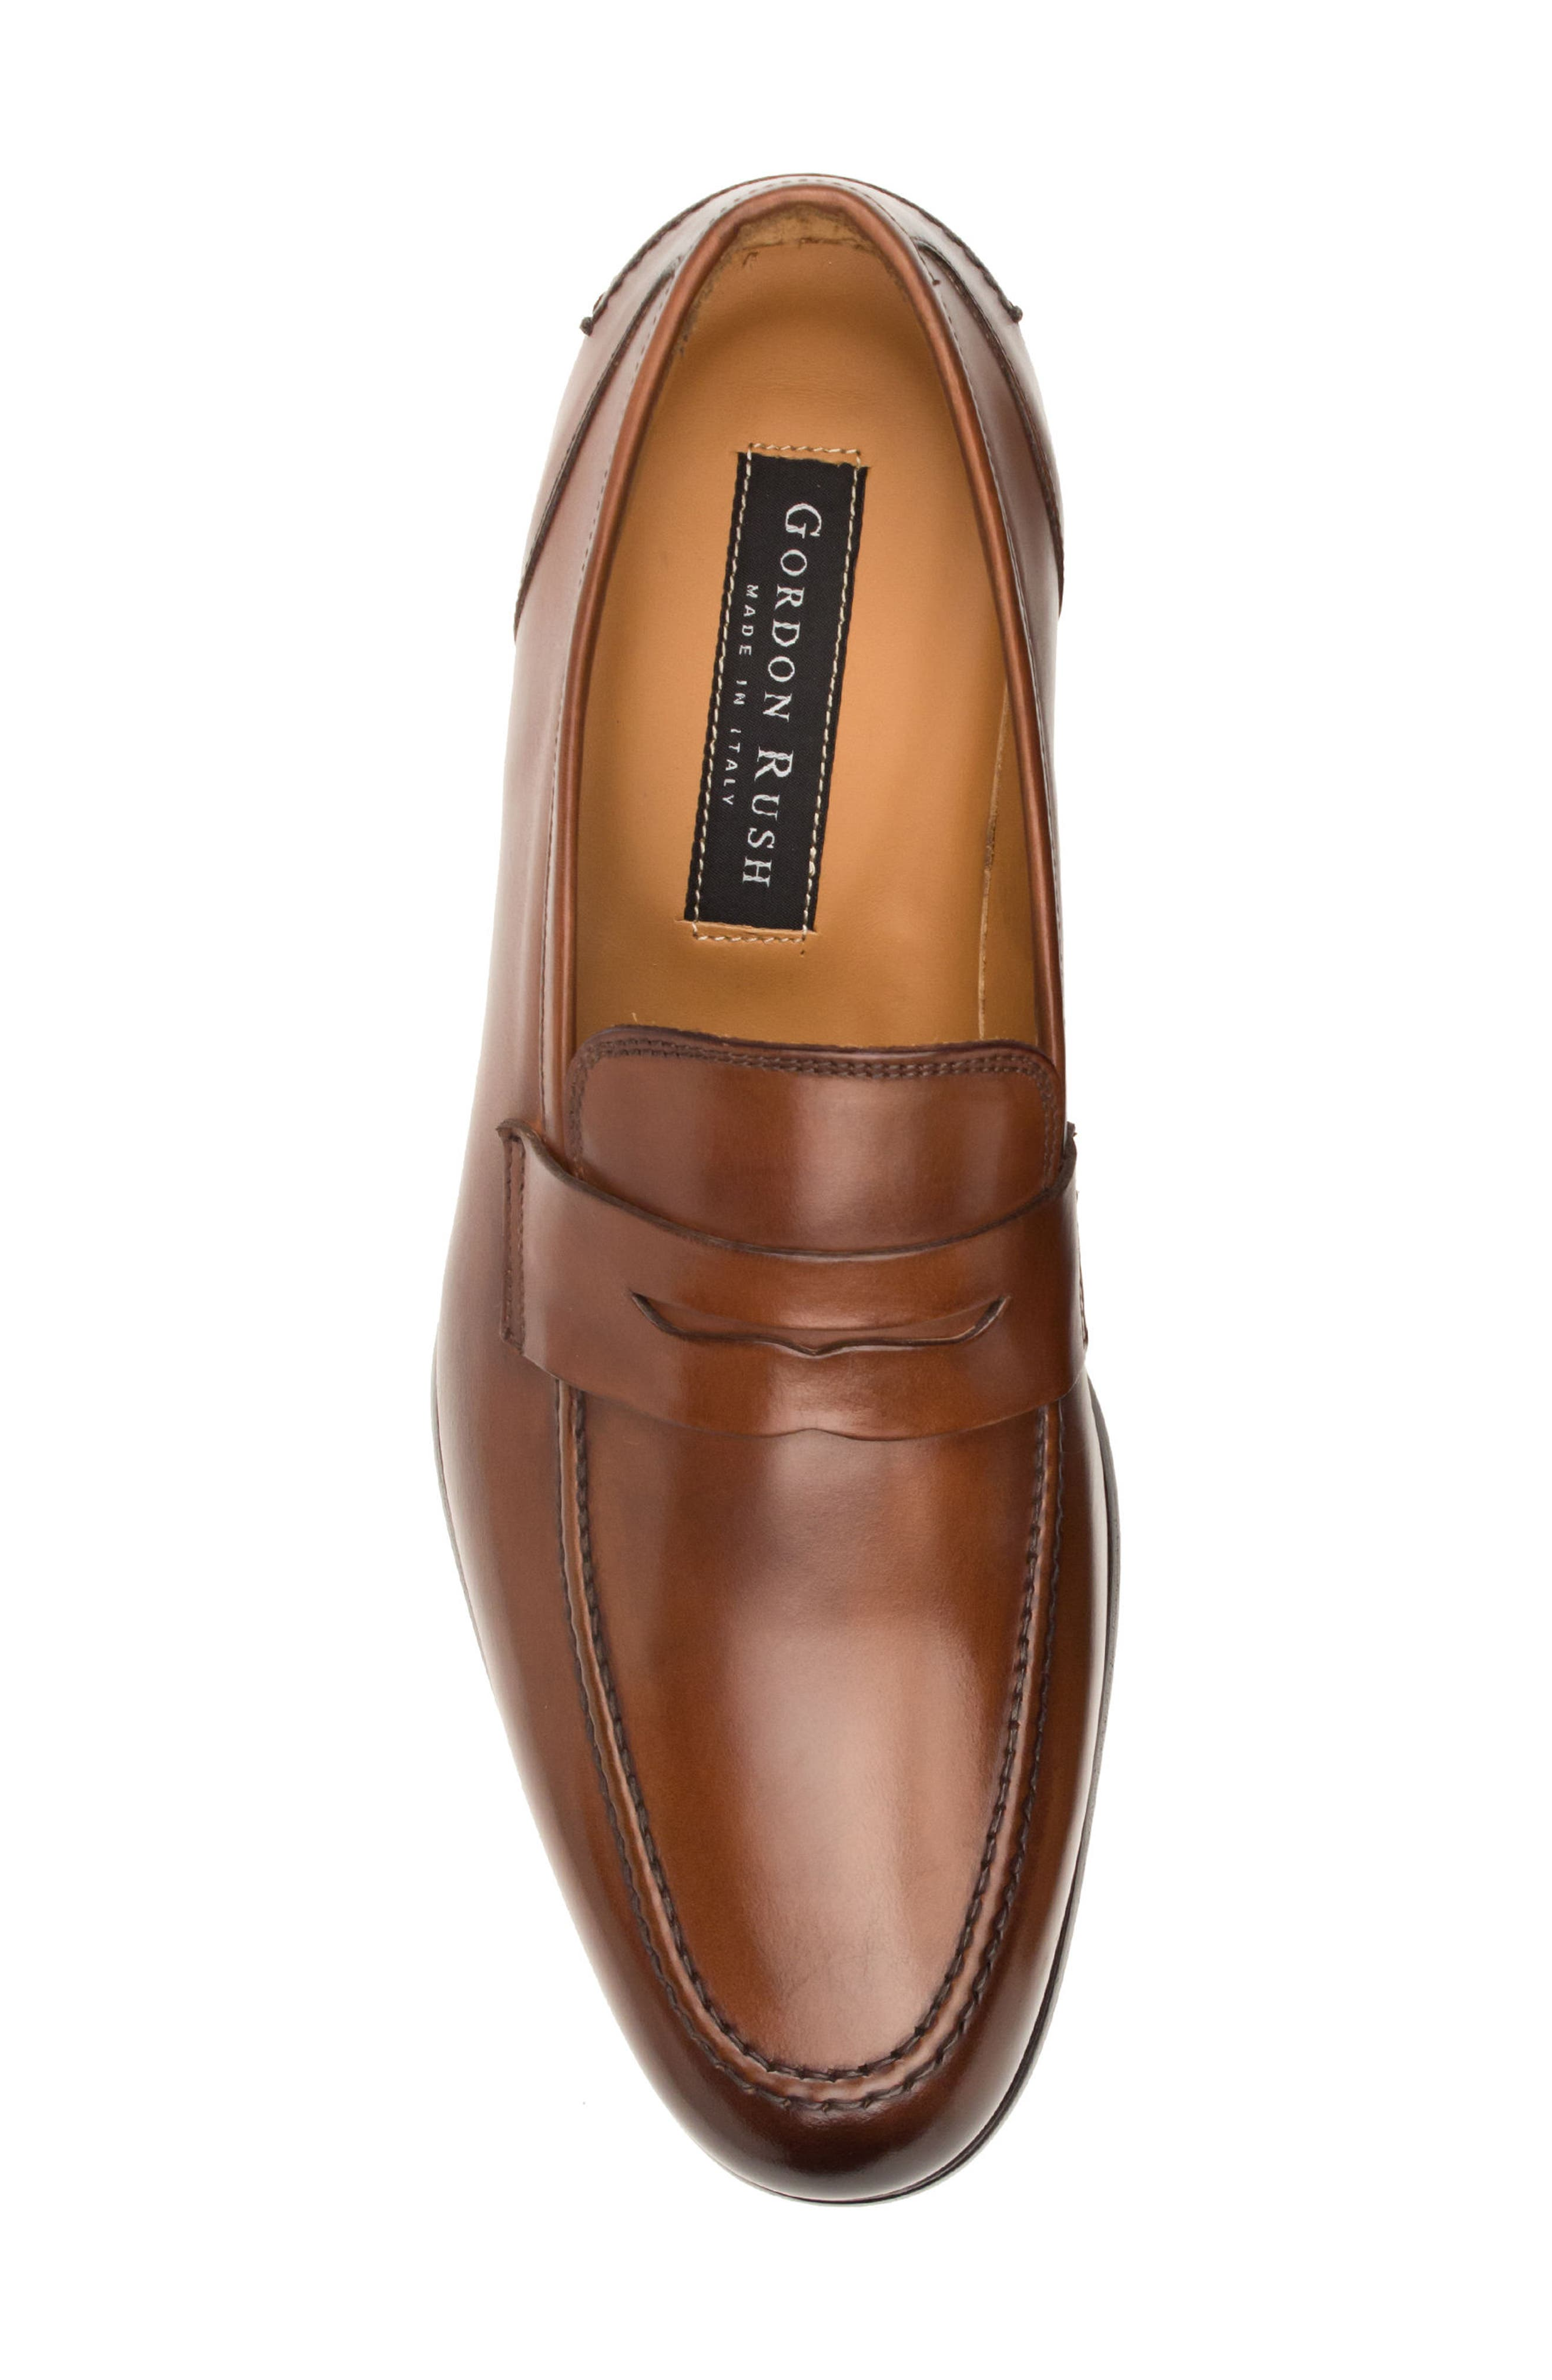 Coleman Apron Toe Penny Loafer,                             Alternate thumbnail 5, color,                             Tan Leather